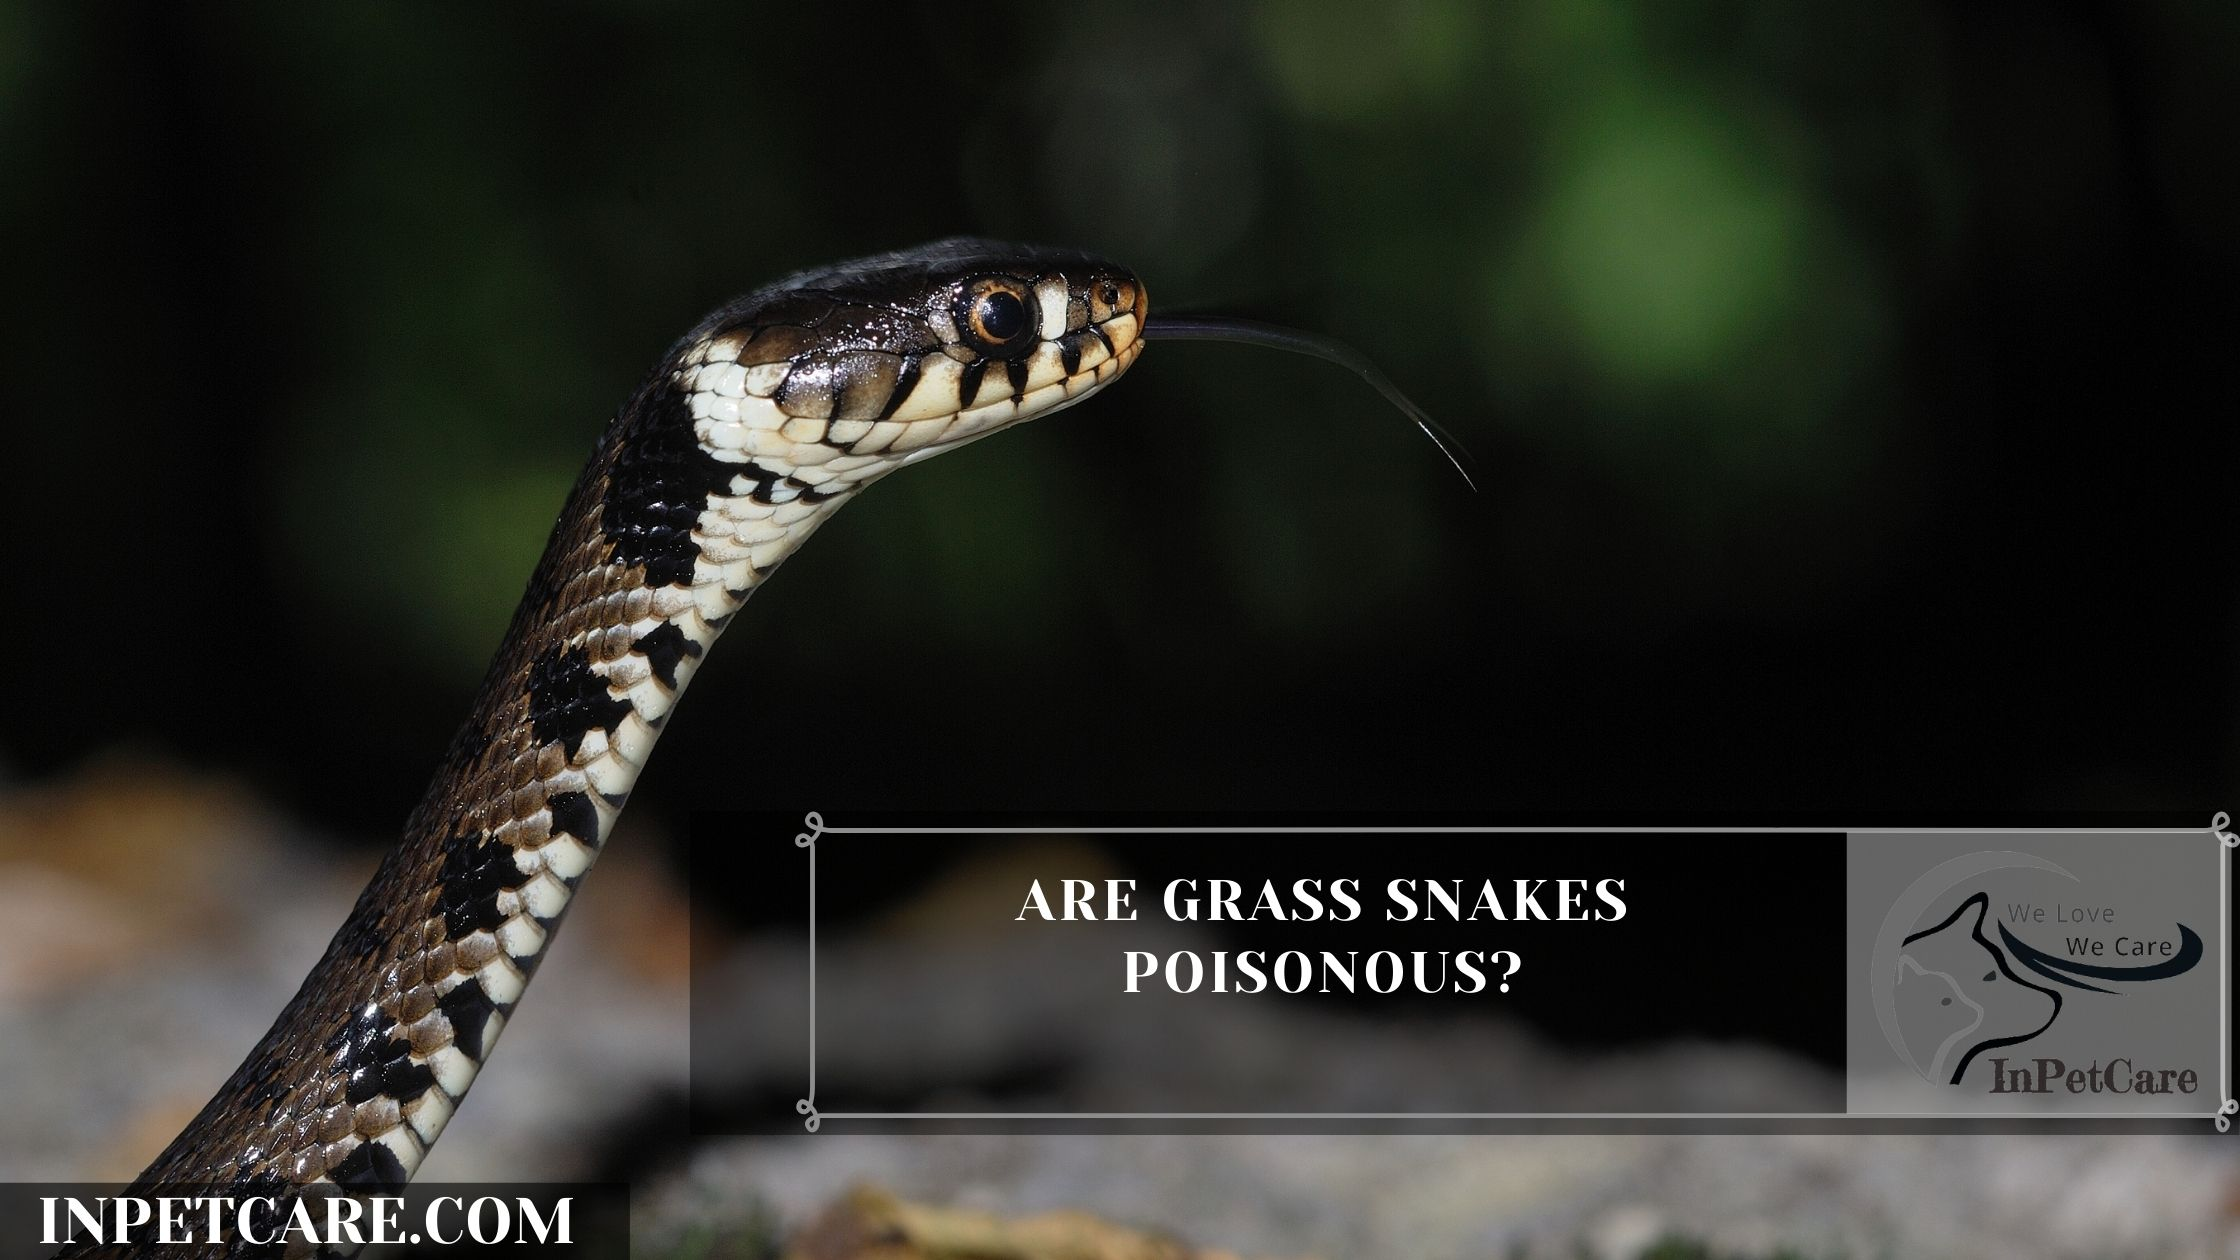 Are Grass Snakes Poisonous?